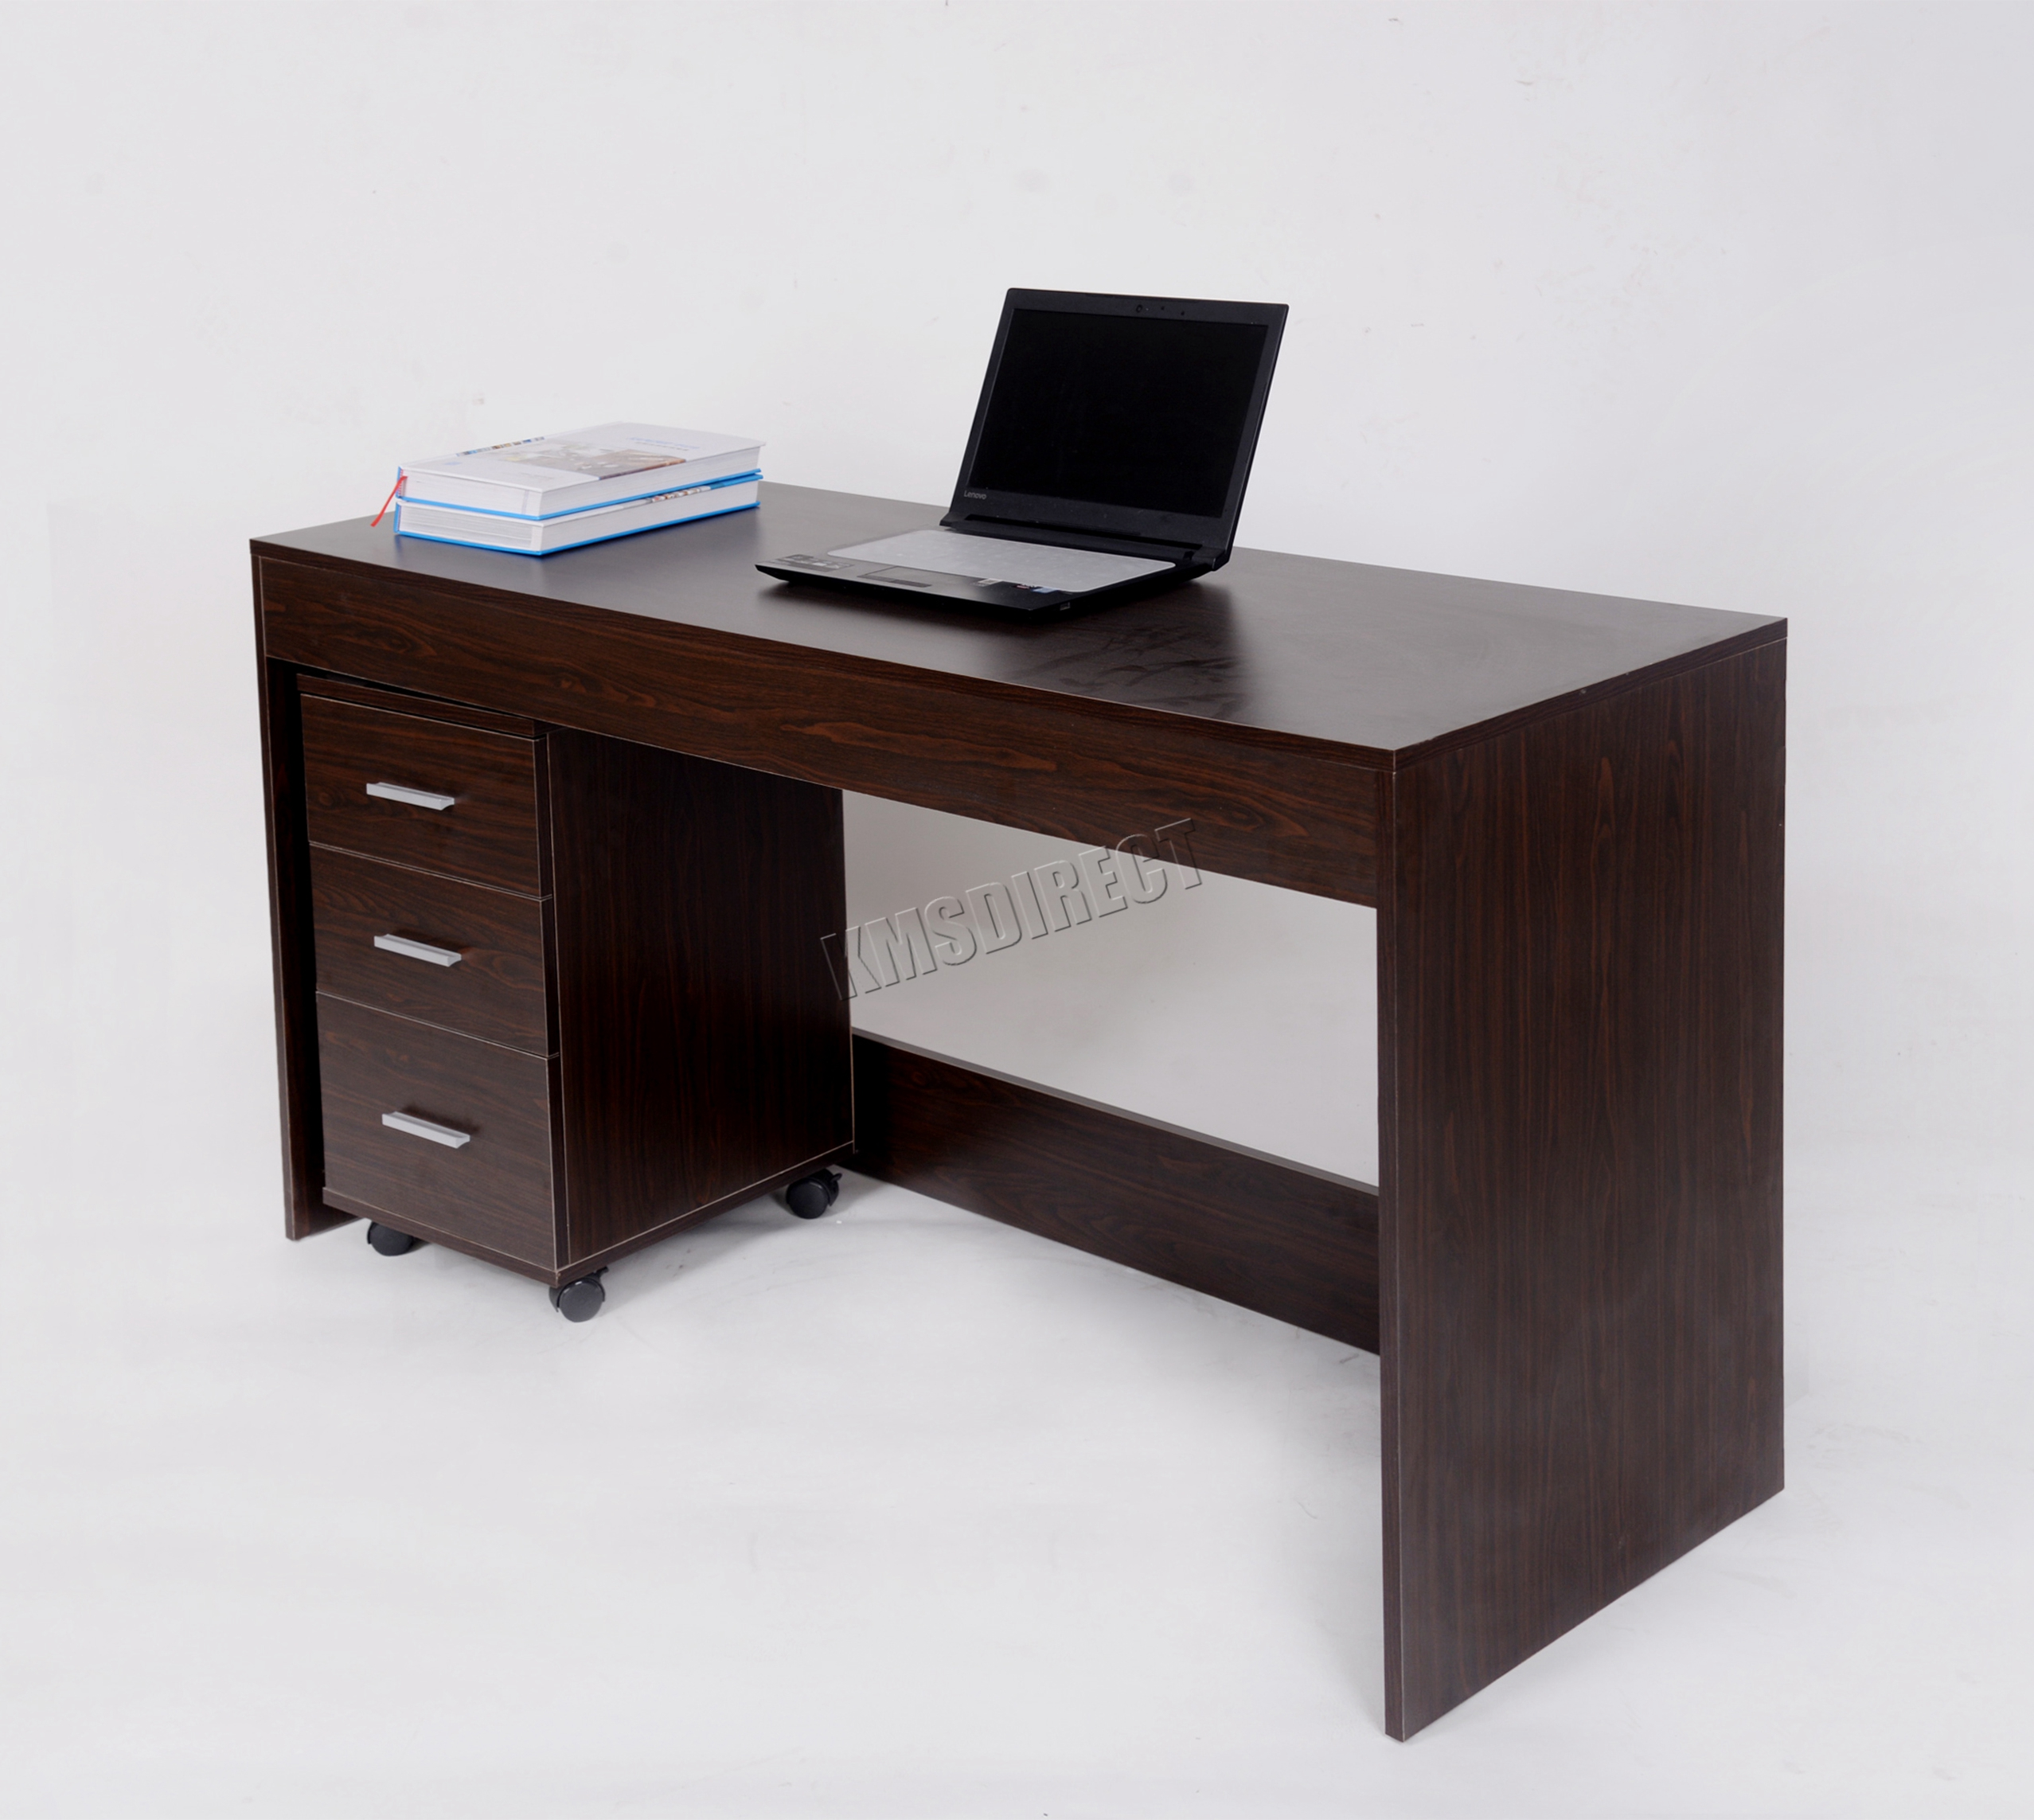 Westwood Computer Desk Table With 3 Drawers Home Office Furniture Cd09 Walnut Ebay